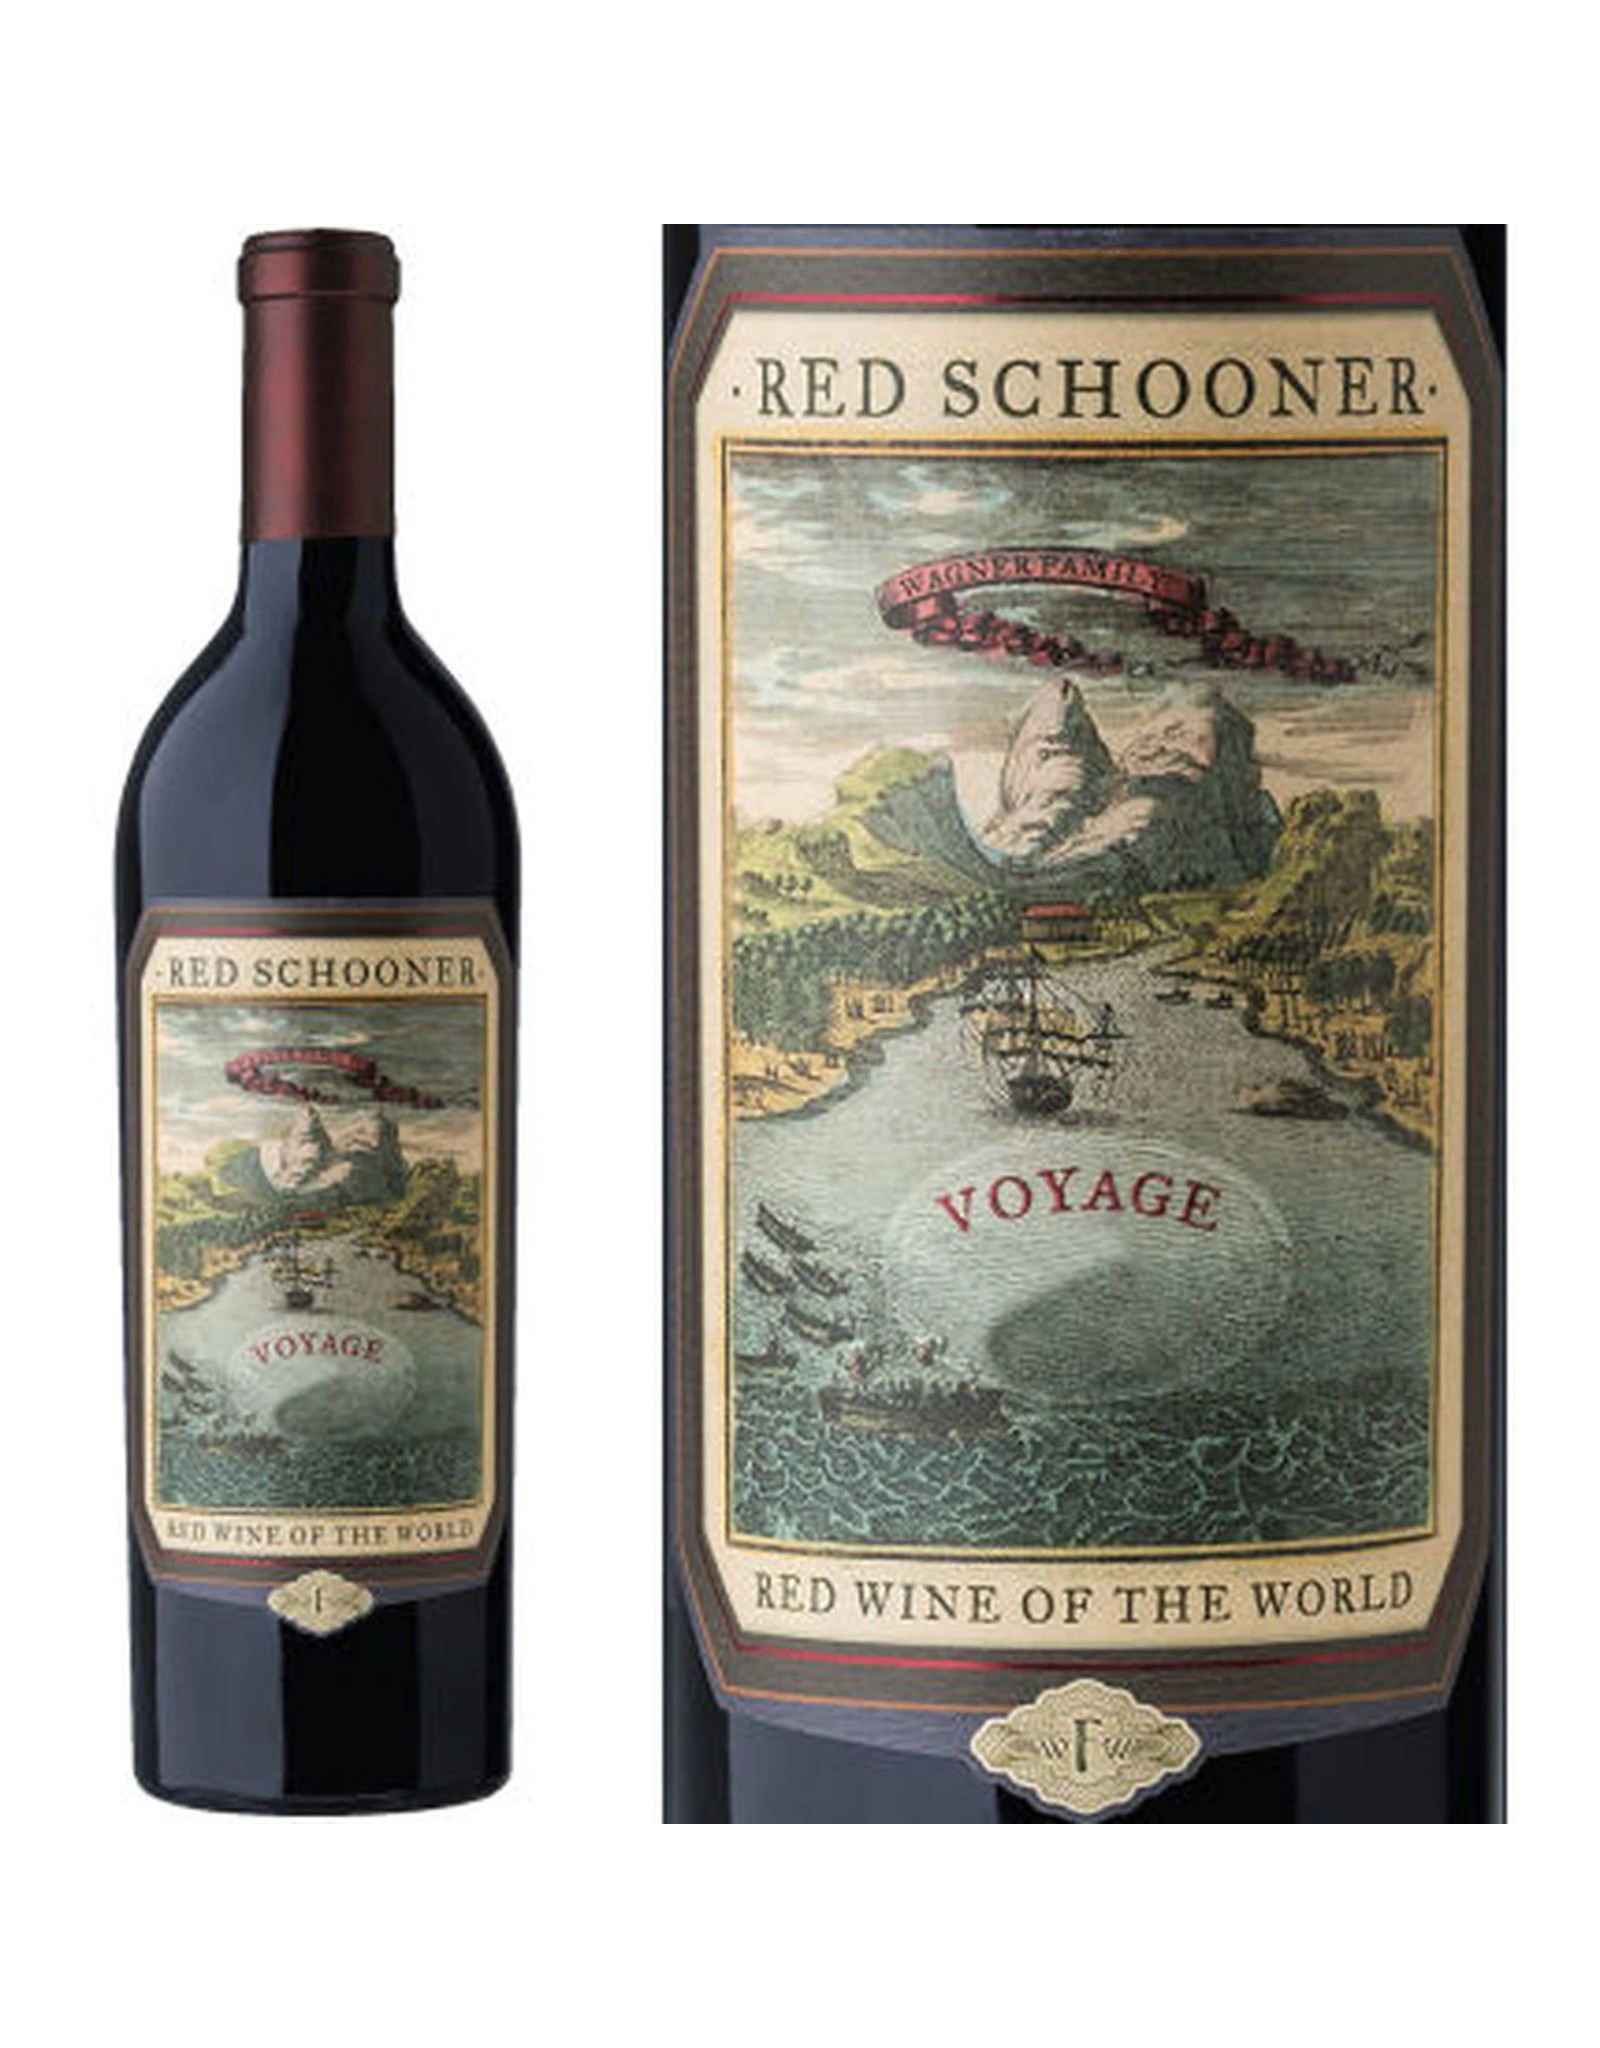 Wagner Family of Wines Caymus Vineyards Red Schooner Voyage 8